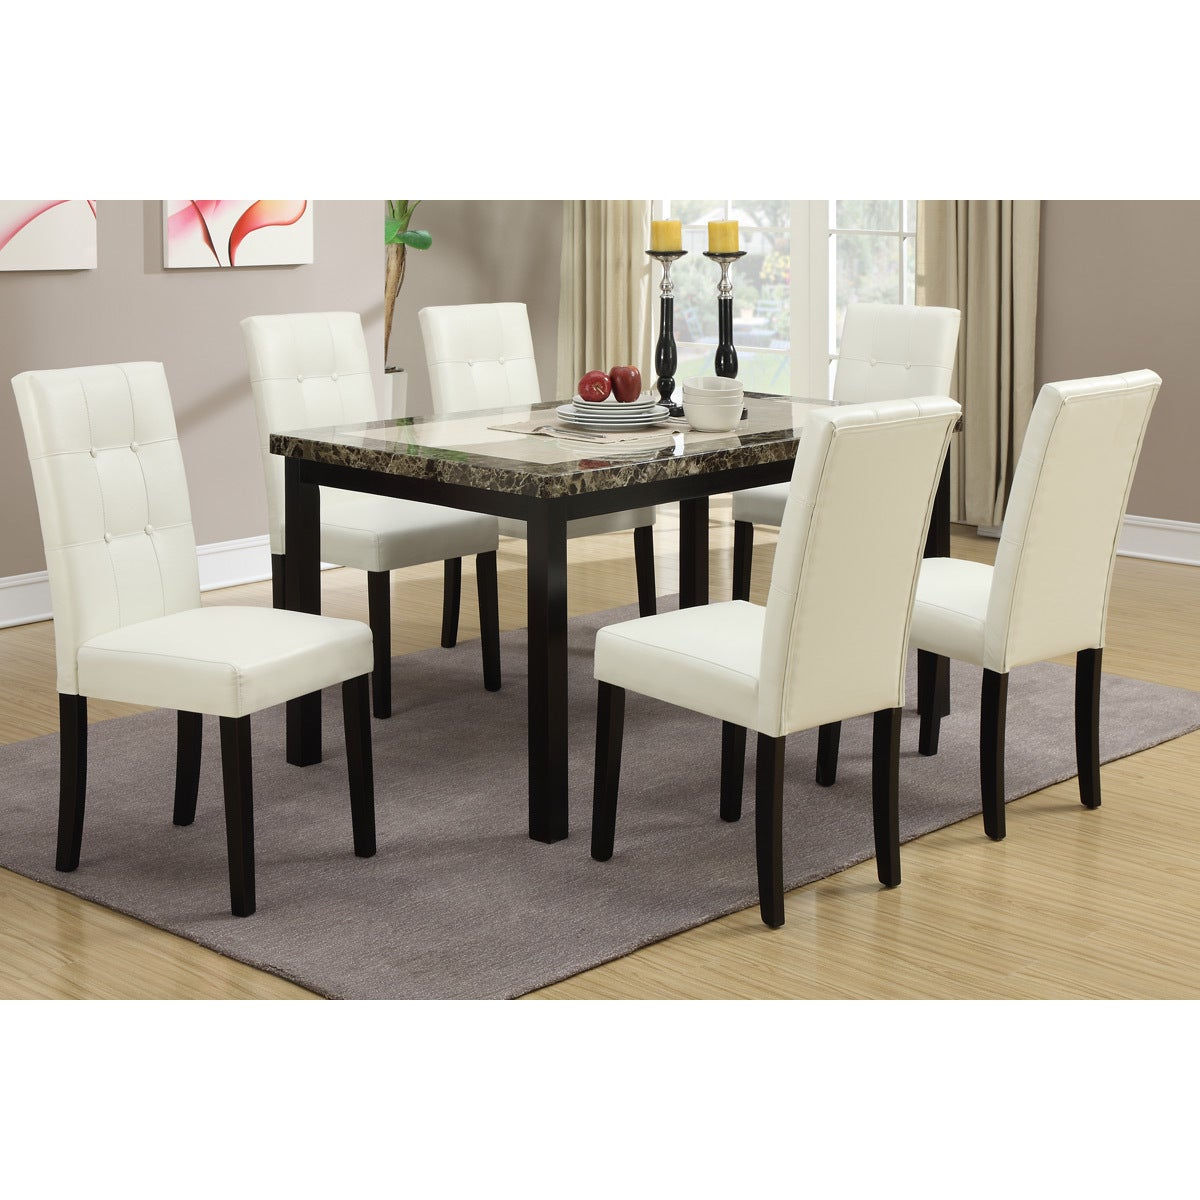 Willow White Cream Dining Chairs (Set of 12)